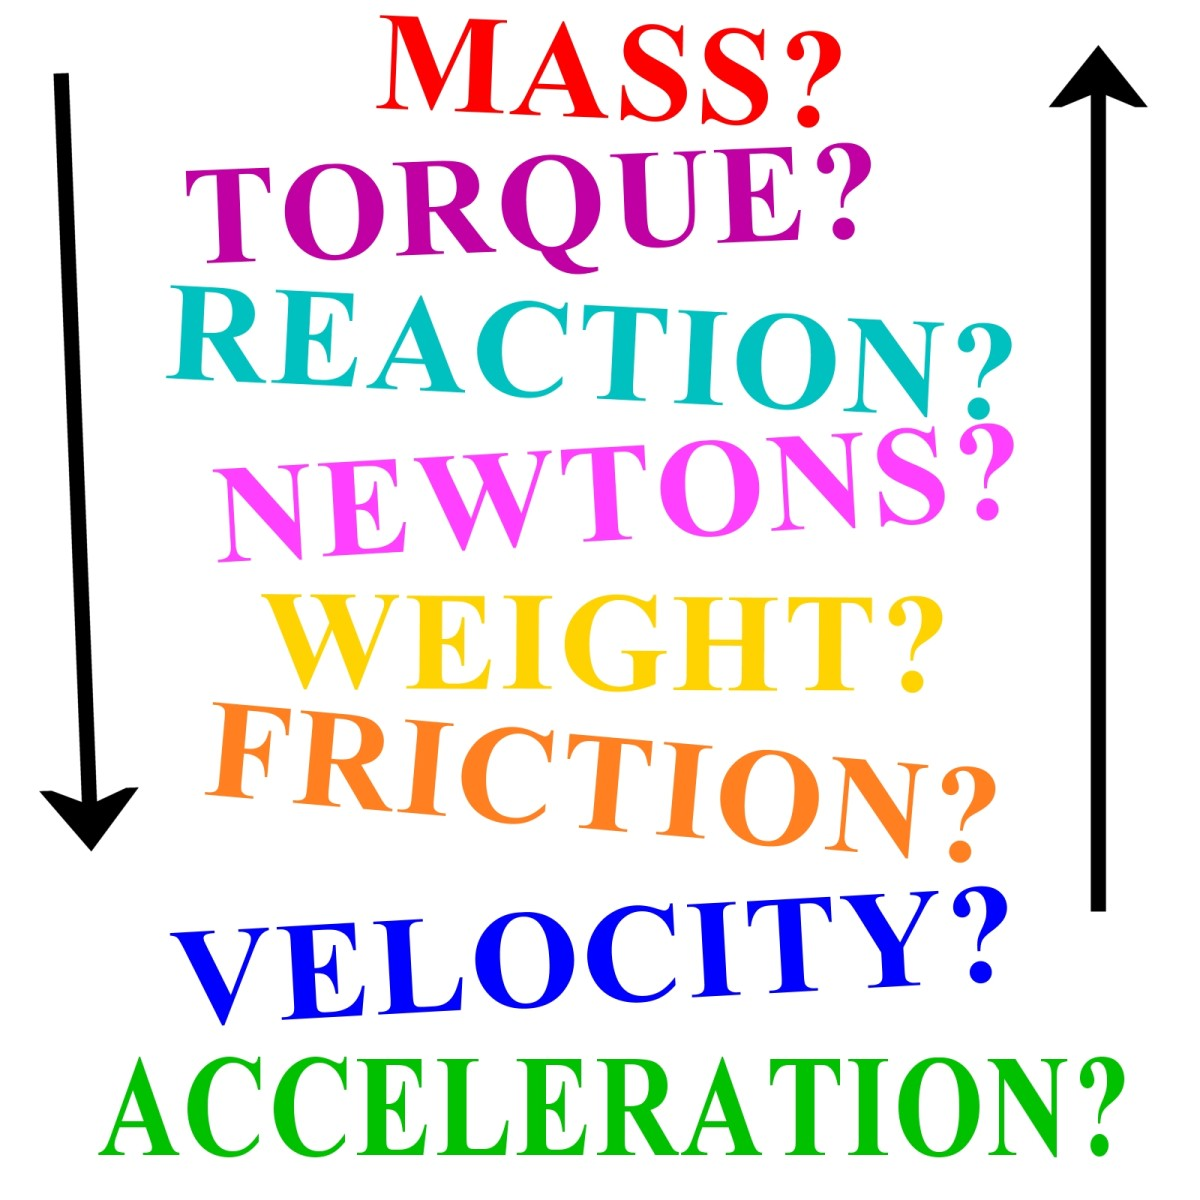 Force, Weight, Newtons, Velocity, Mass and Friction—Basic Principles of Mechanics